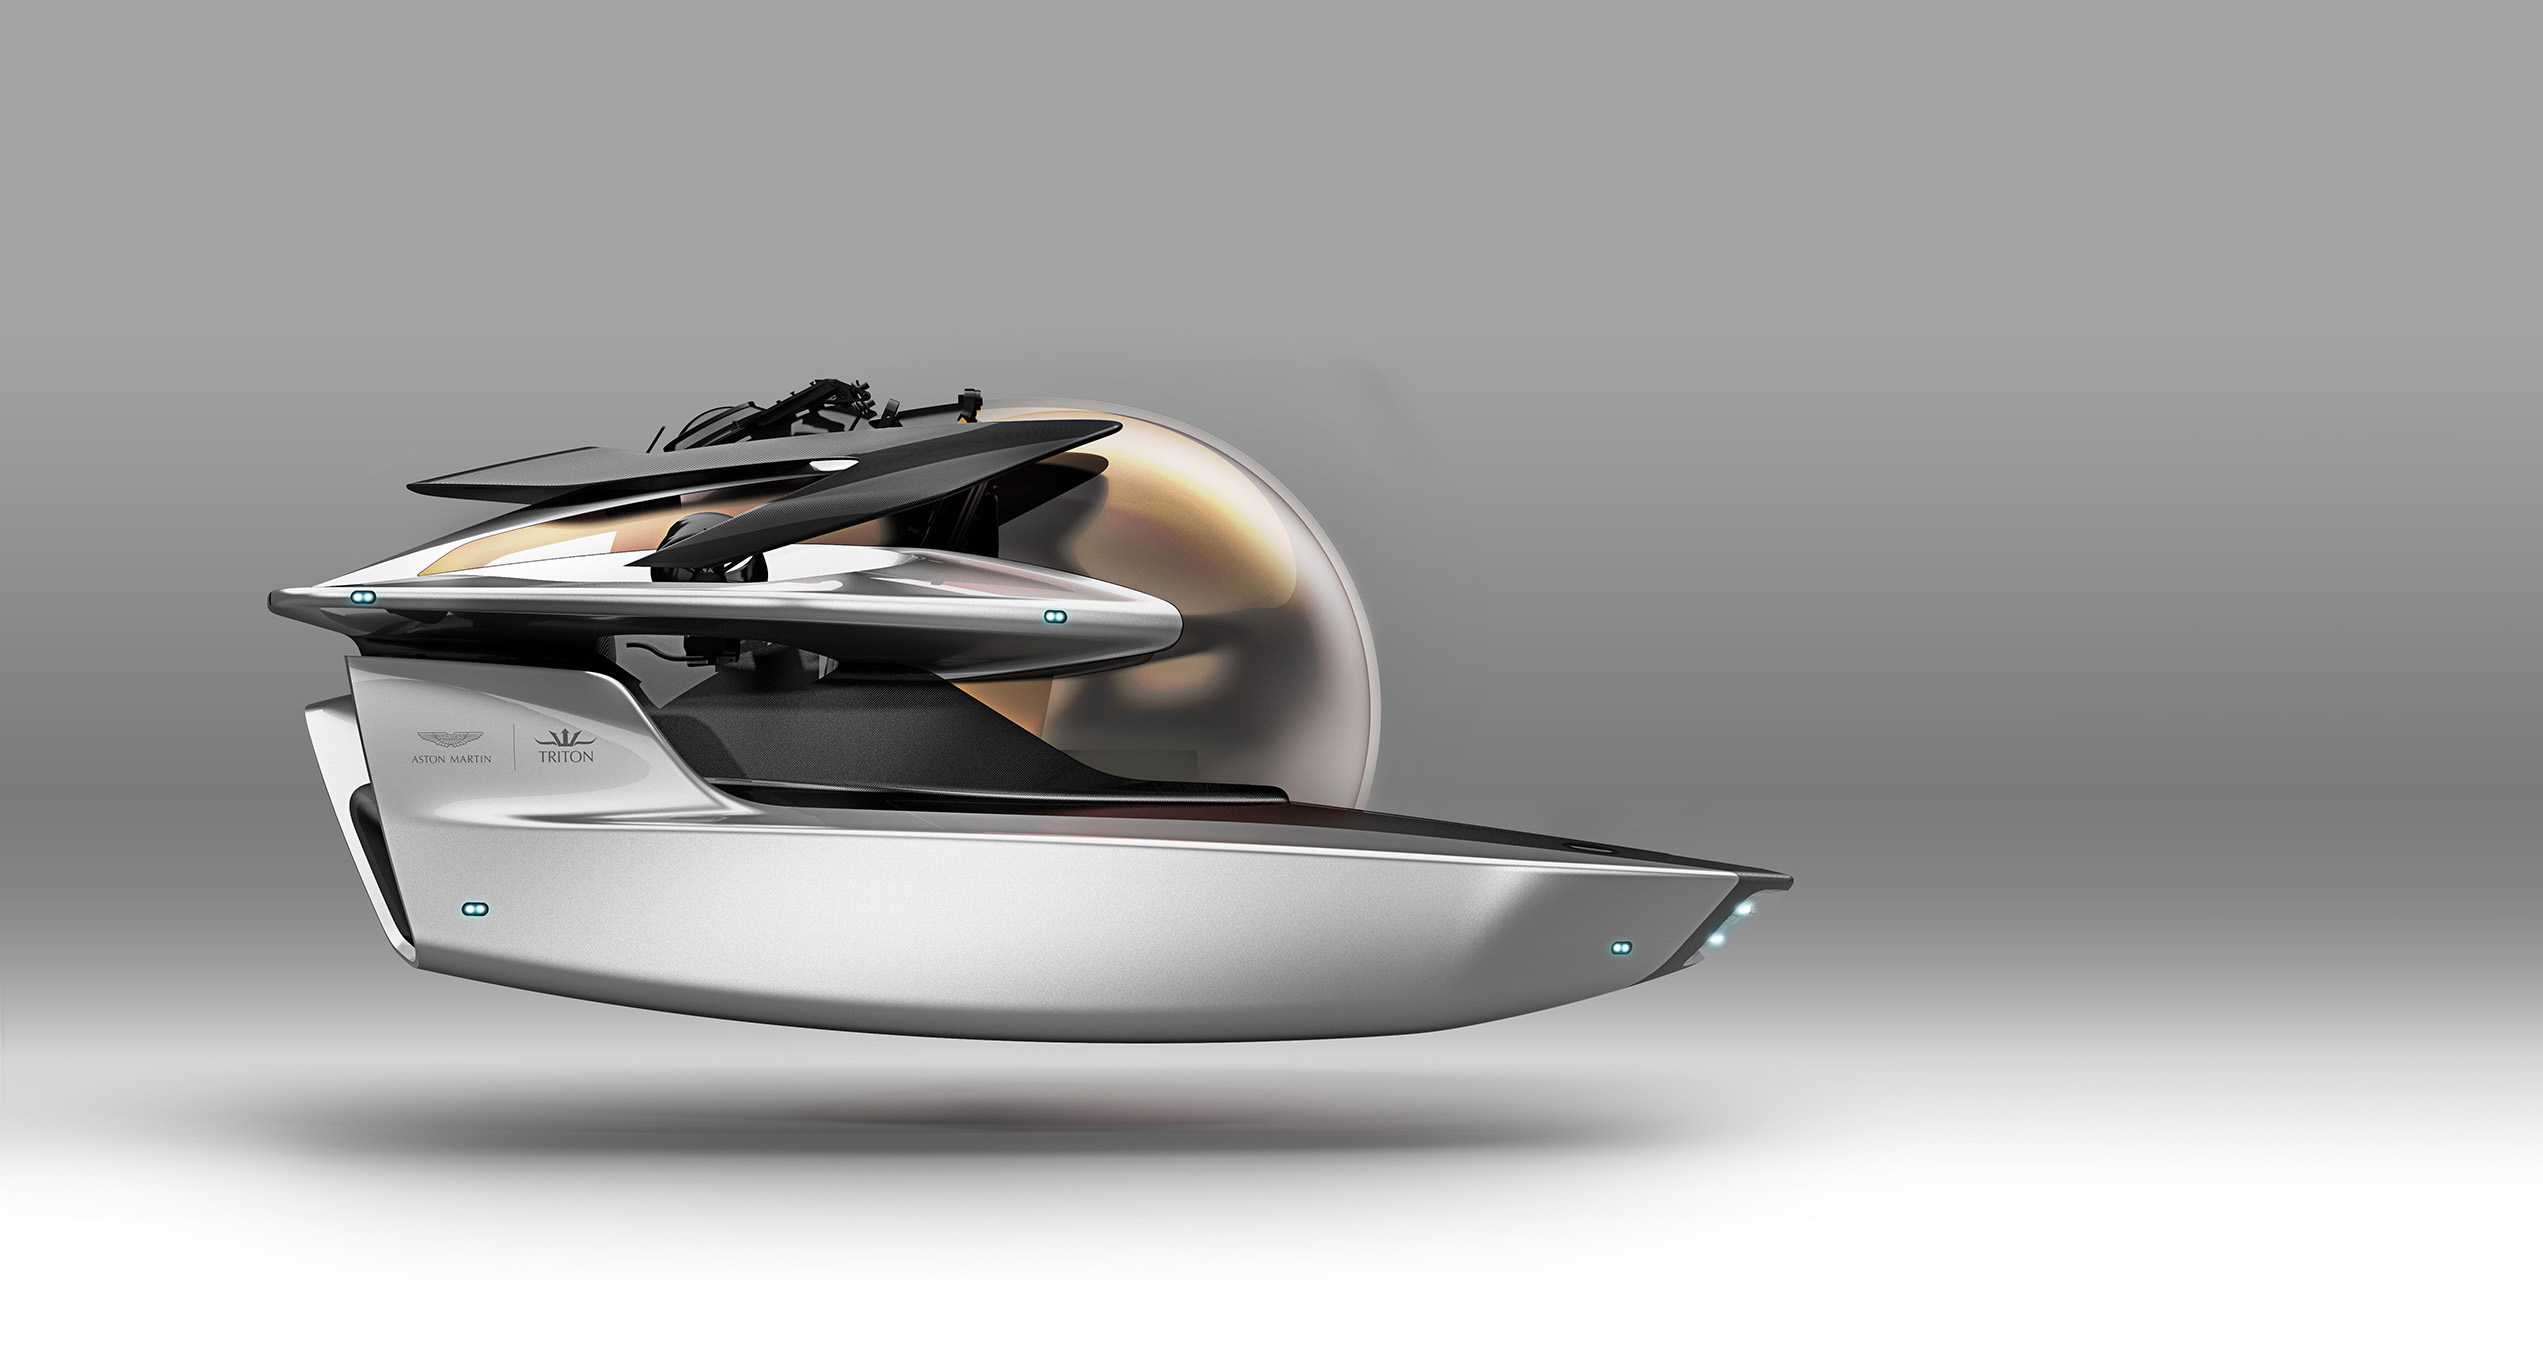 submersibles top the list of most requested superyacht toys